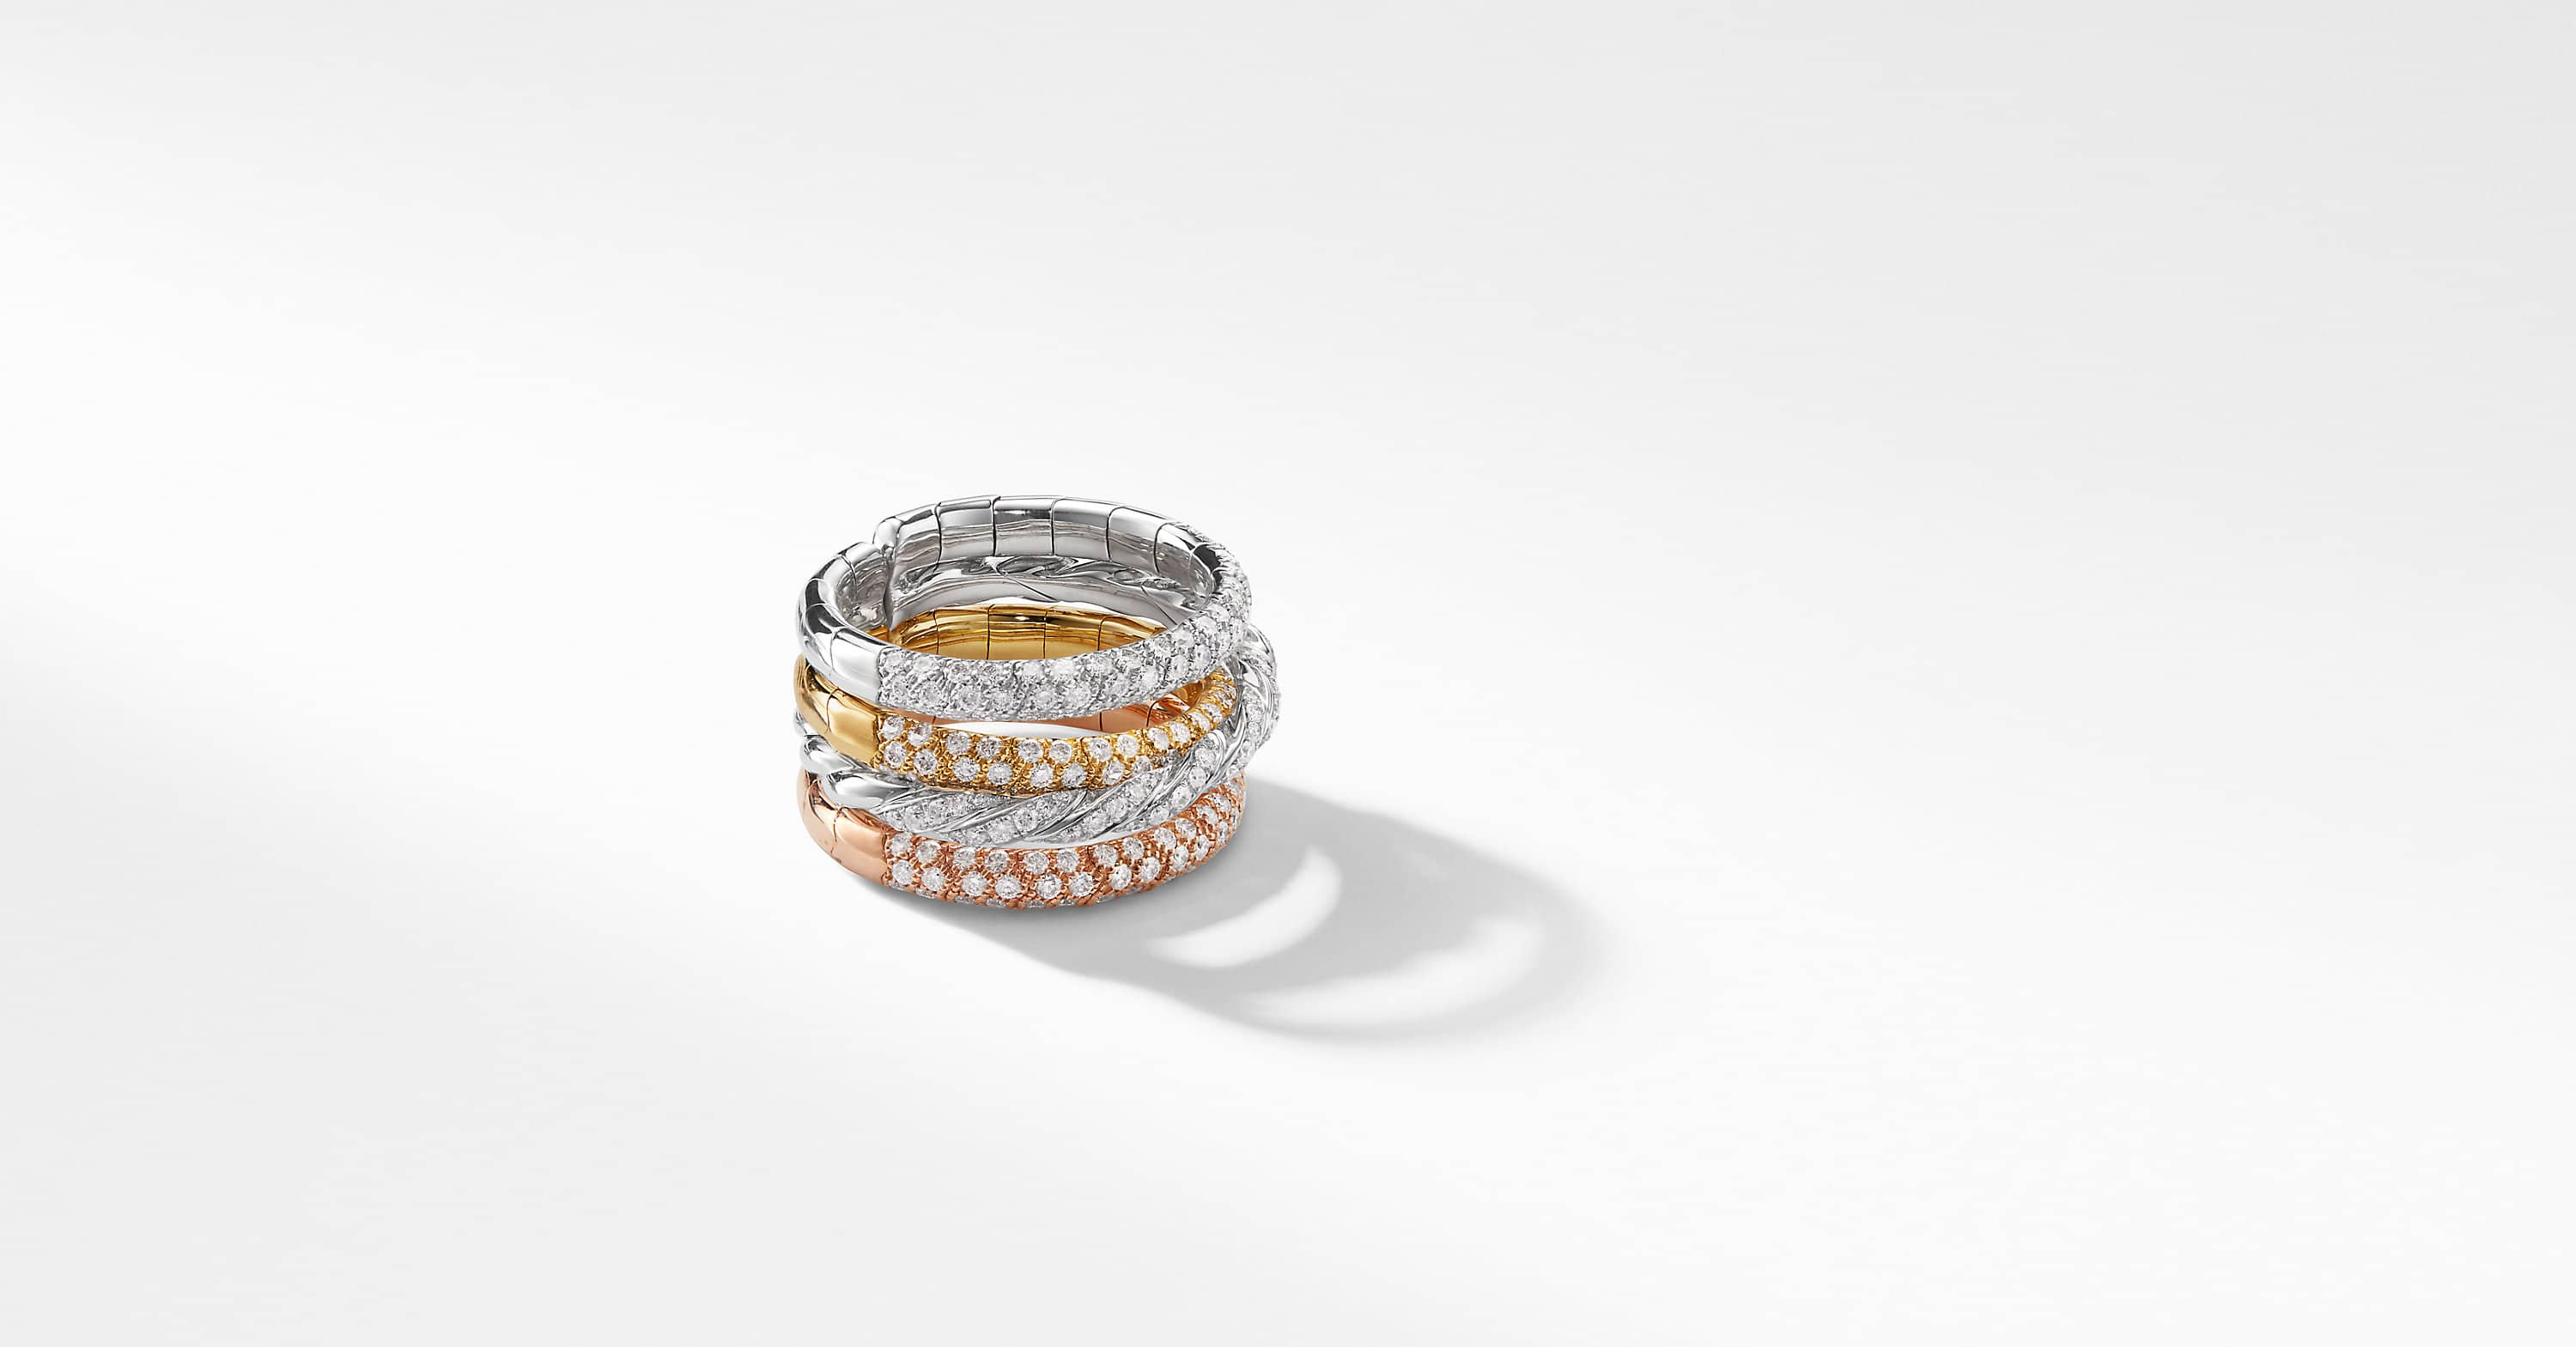 Paveflex Four Row Ring with Diamonds in 18K Gold